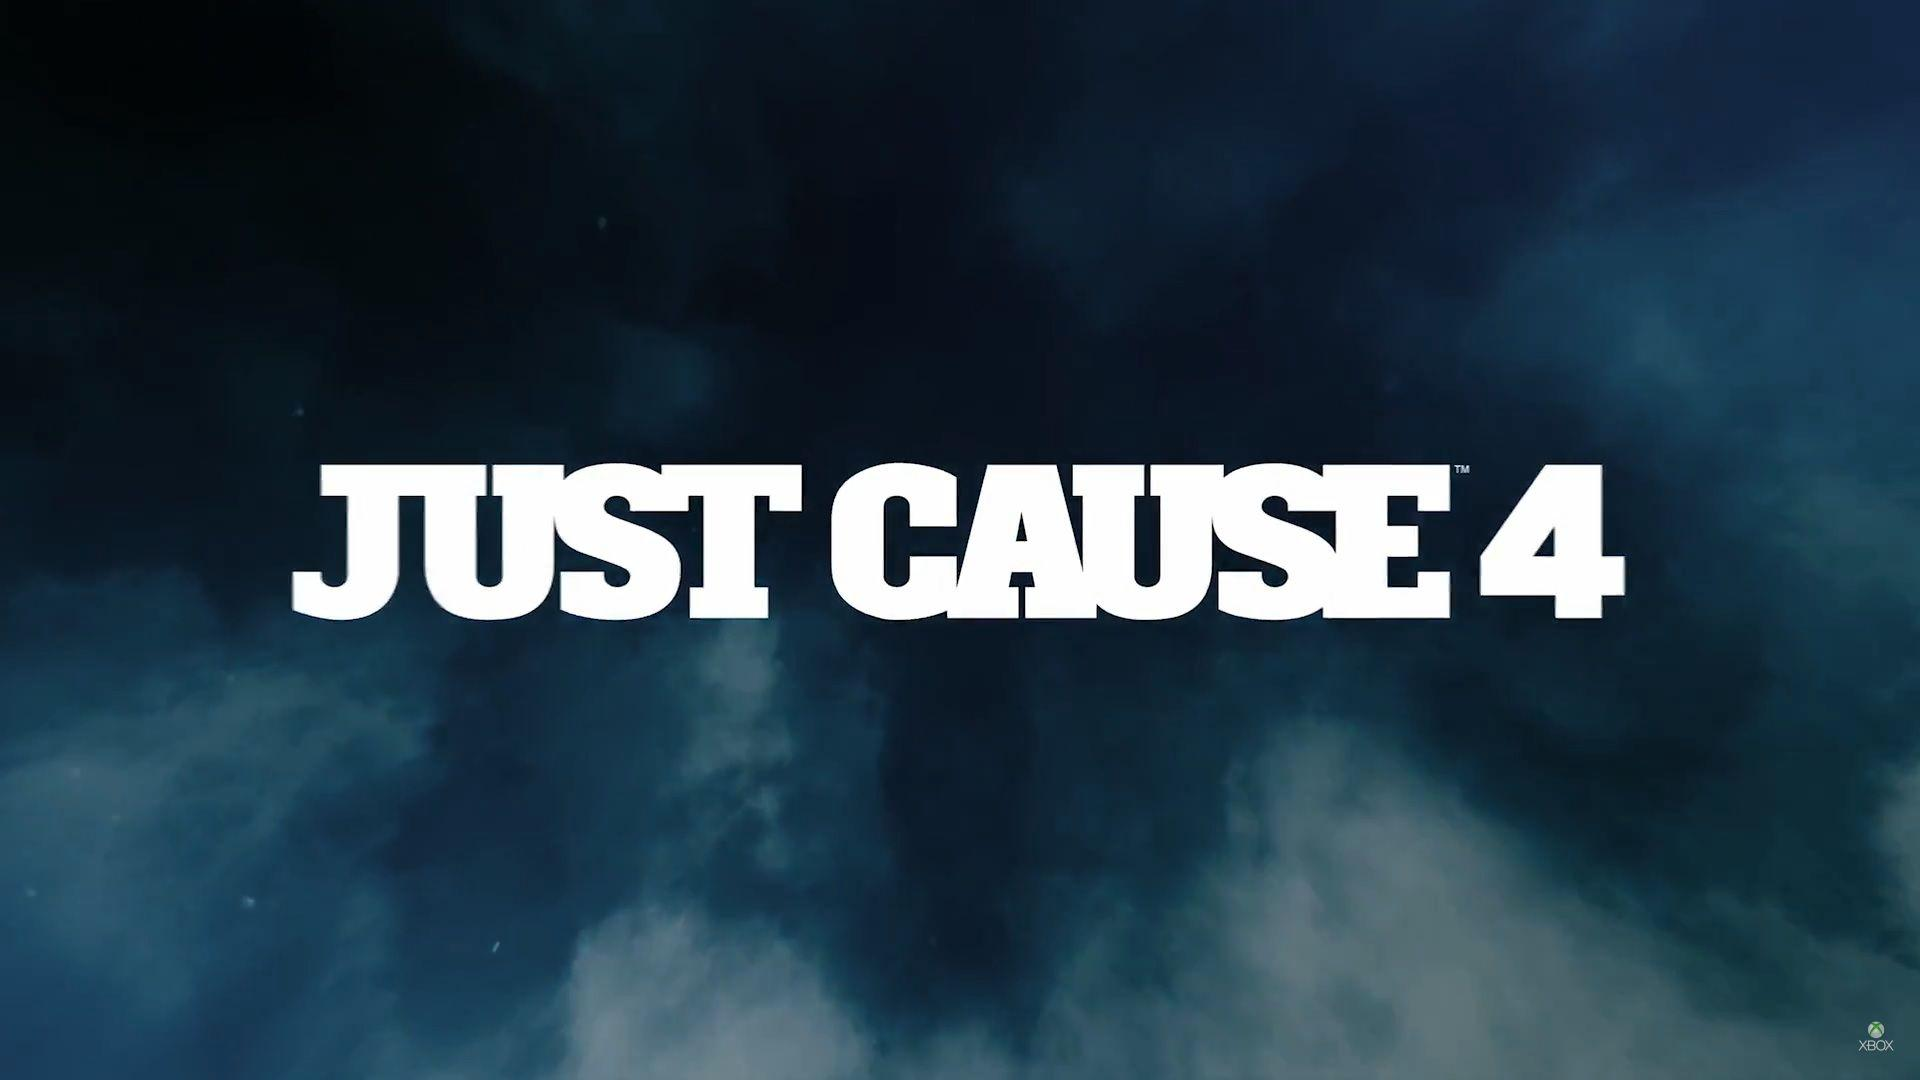 Just Cause 4 Wallpaper: Just Cause 4 Wallpapers